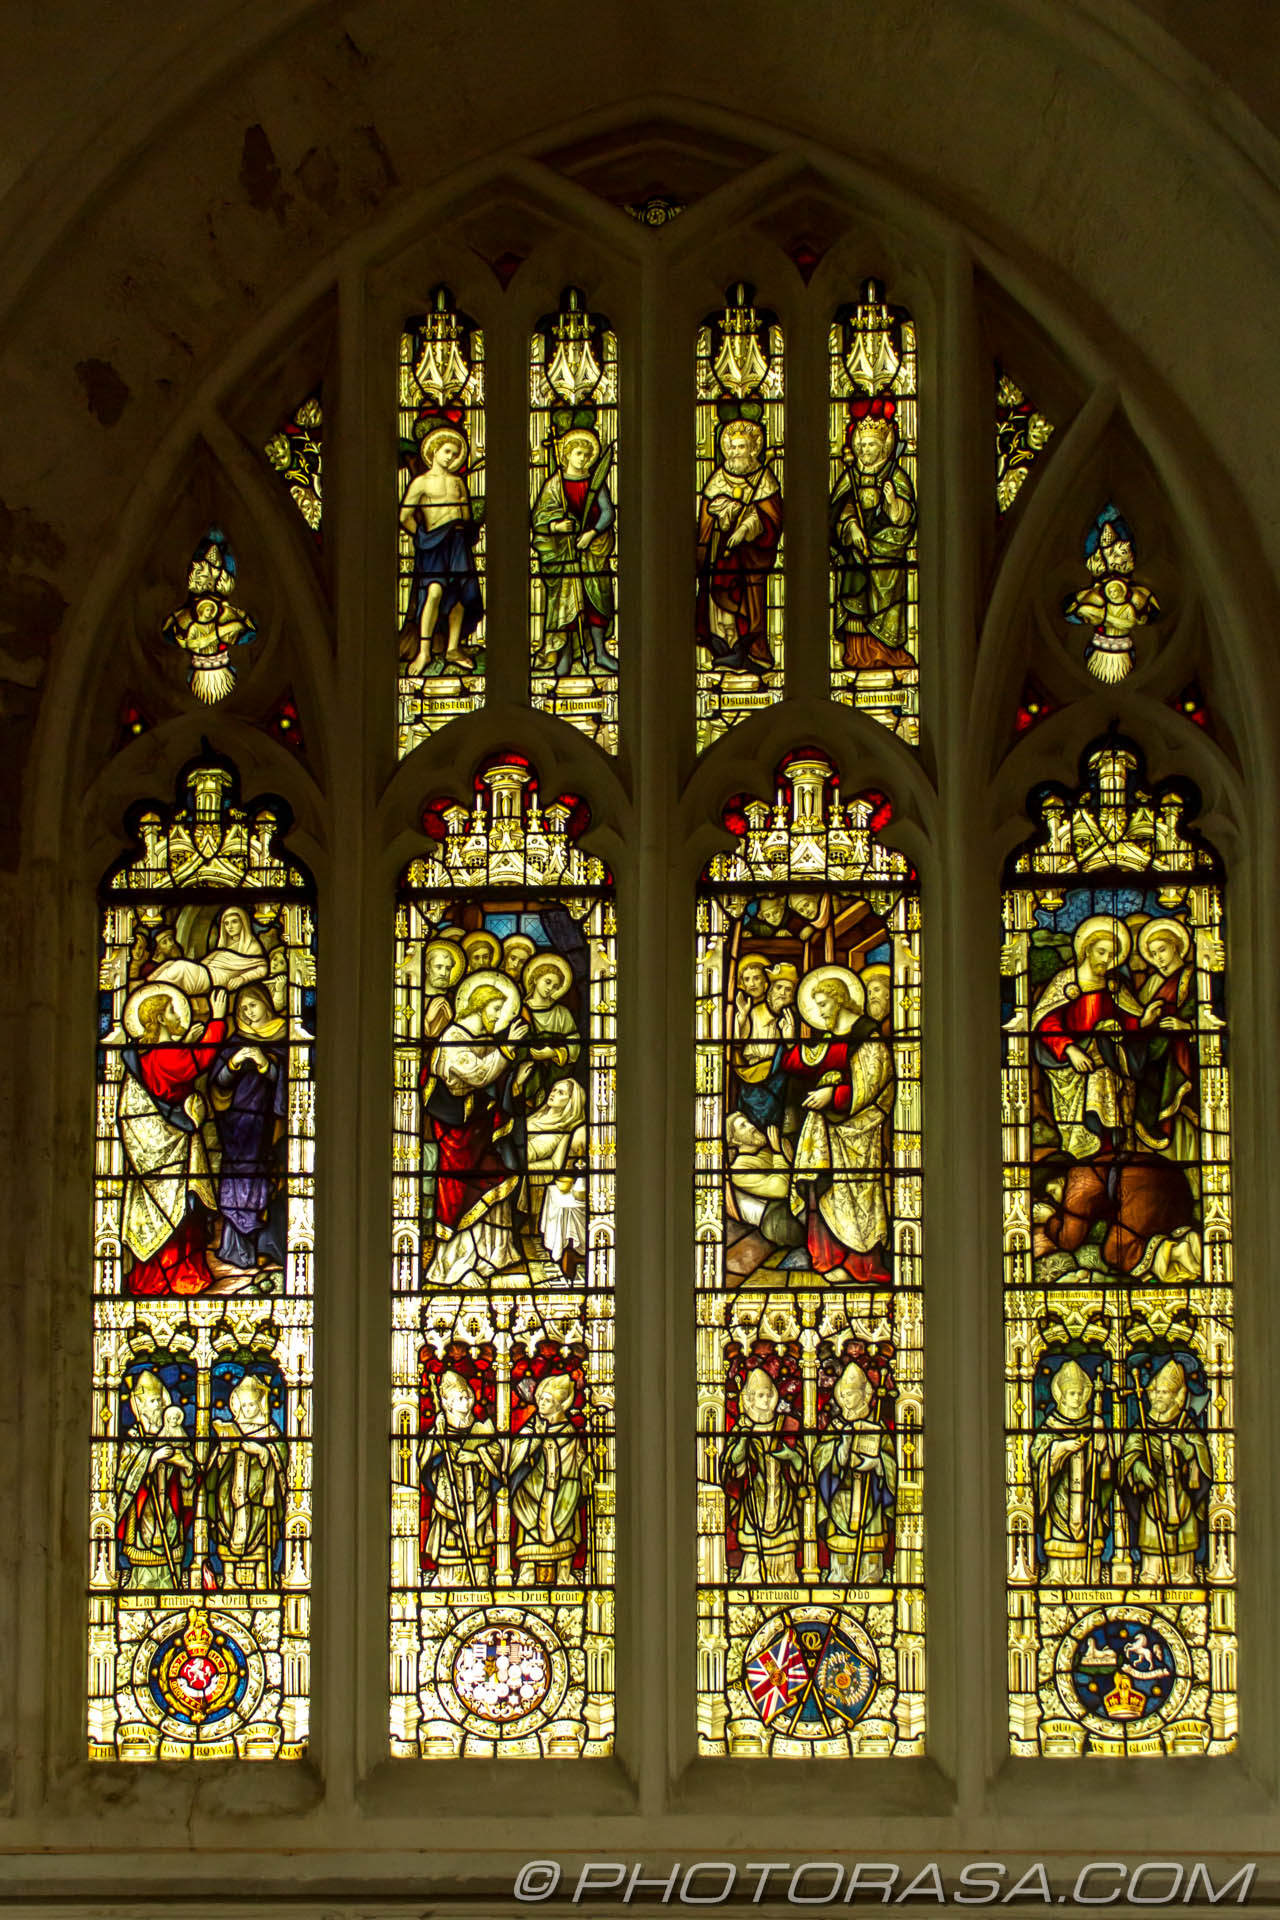 http://photorasa.com/inside-all-saints-church-in-maidstone/stained-glass-by-the-north-aisle/